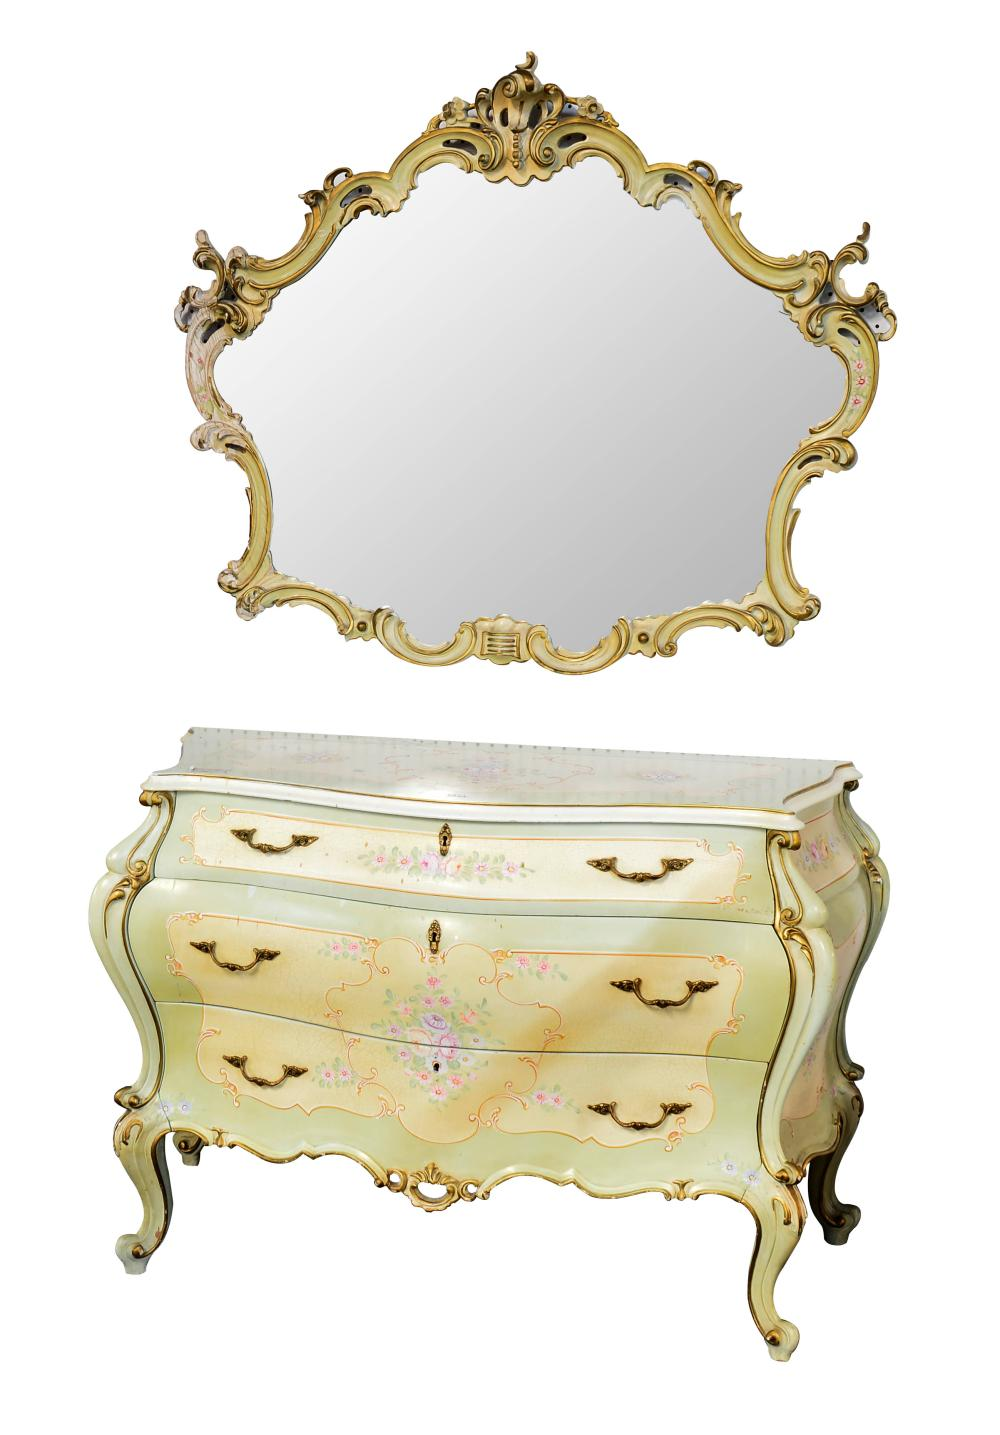 Louis XV- style commode with matching mirror